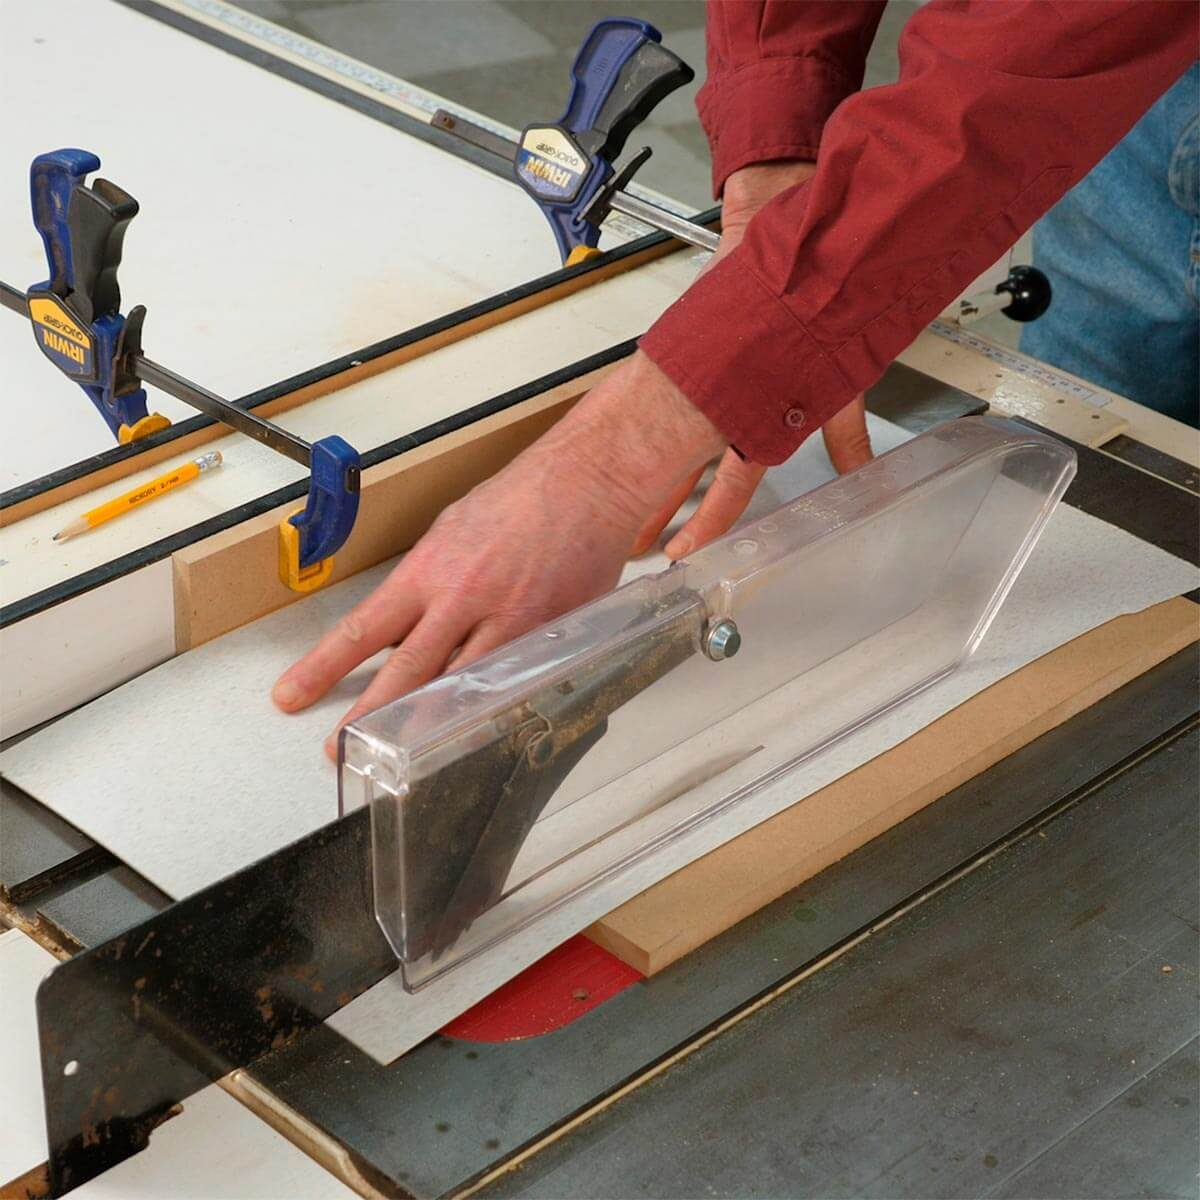 How to use a table saw ripping boards safely family handyman how to cut thin material on a table saw greentooth Image collections